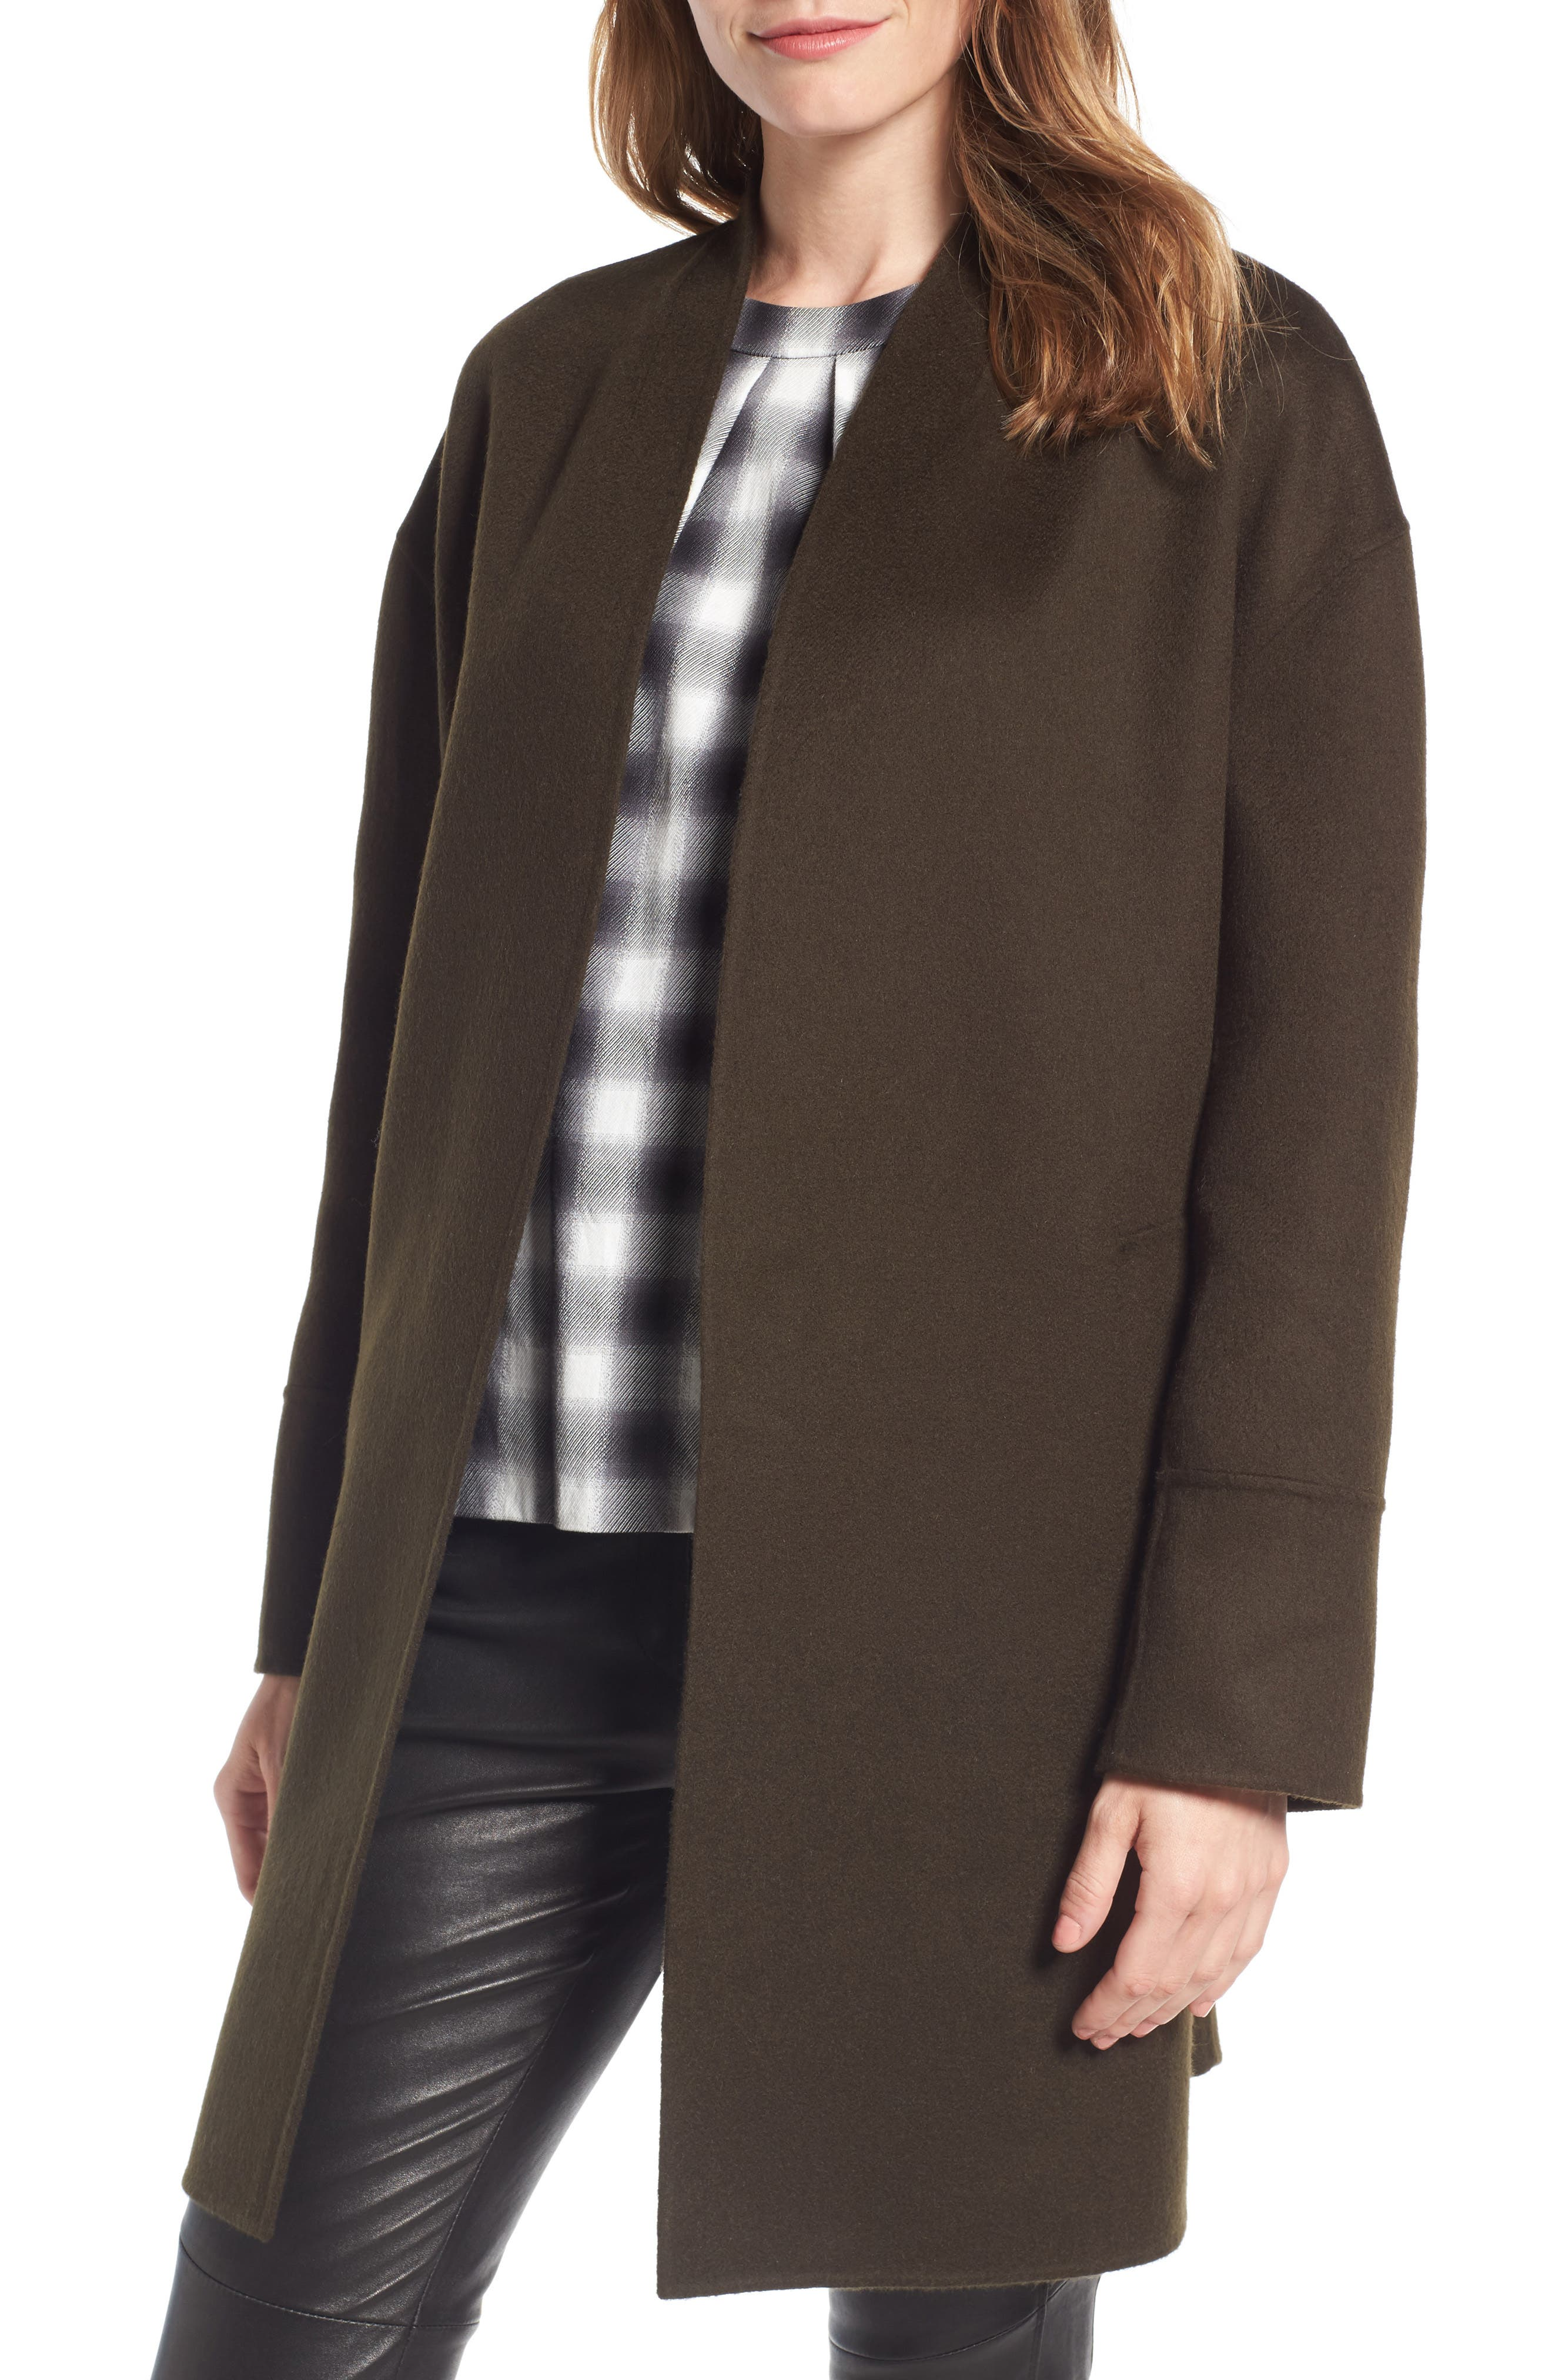 Nordstrom Signature Double Face Wool & Cashmere Jacket